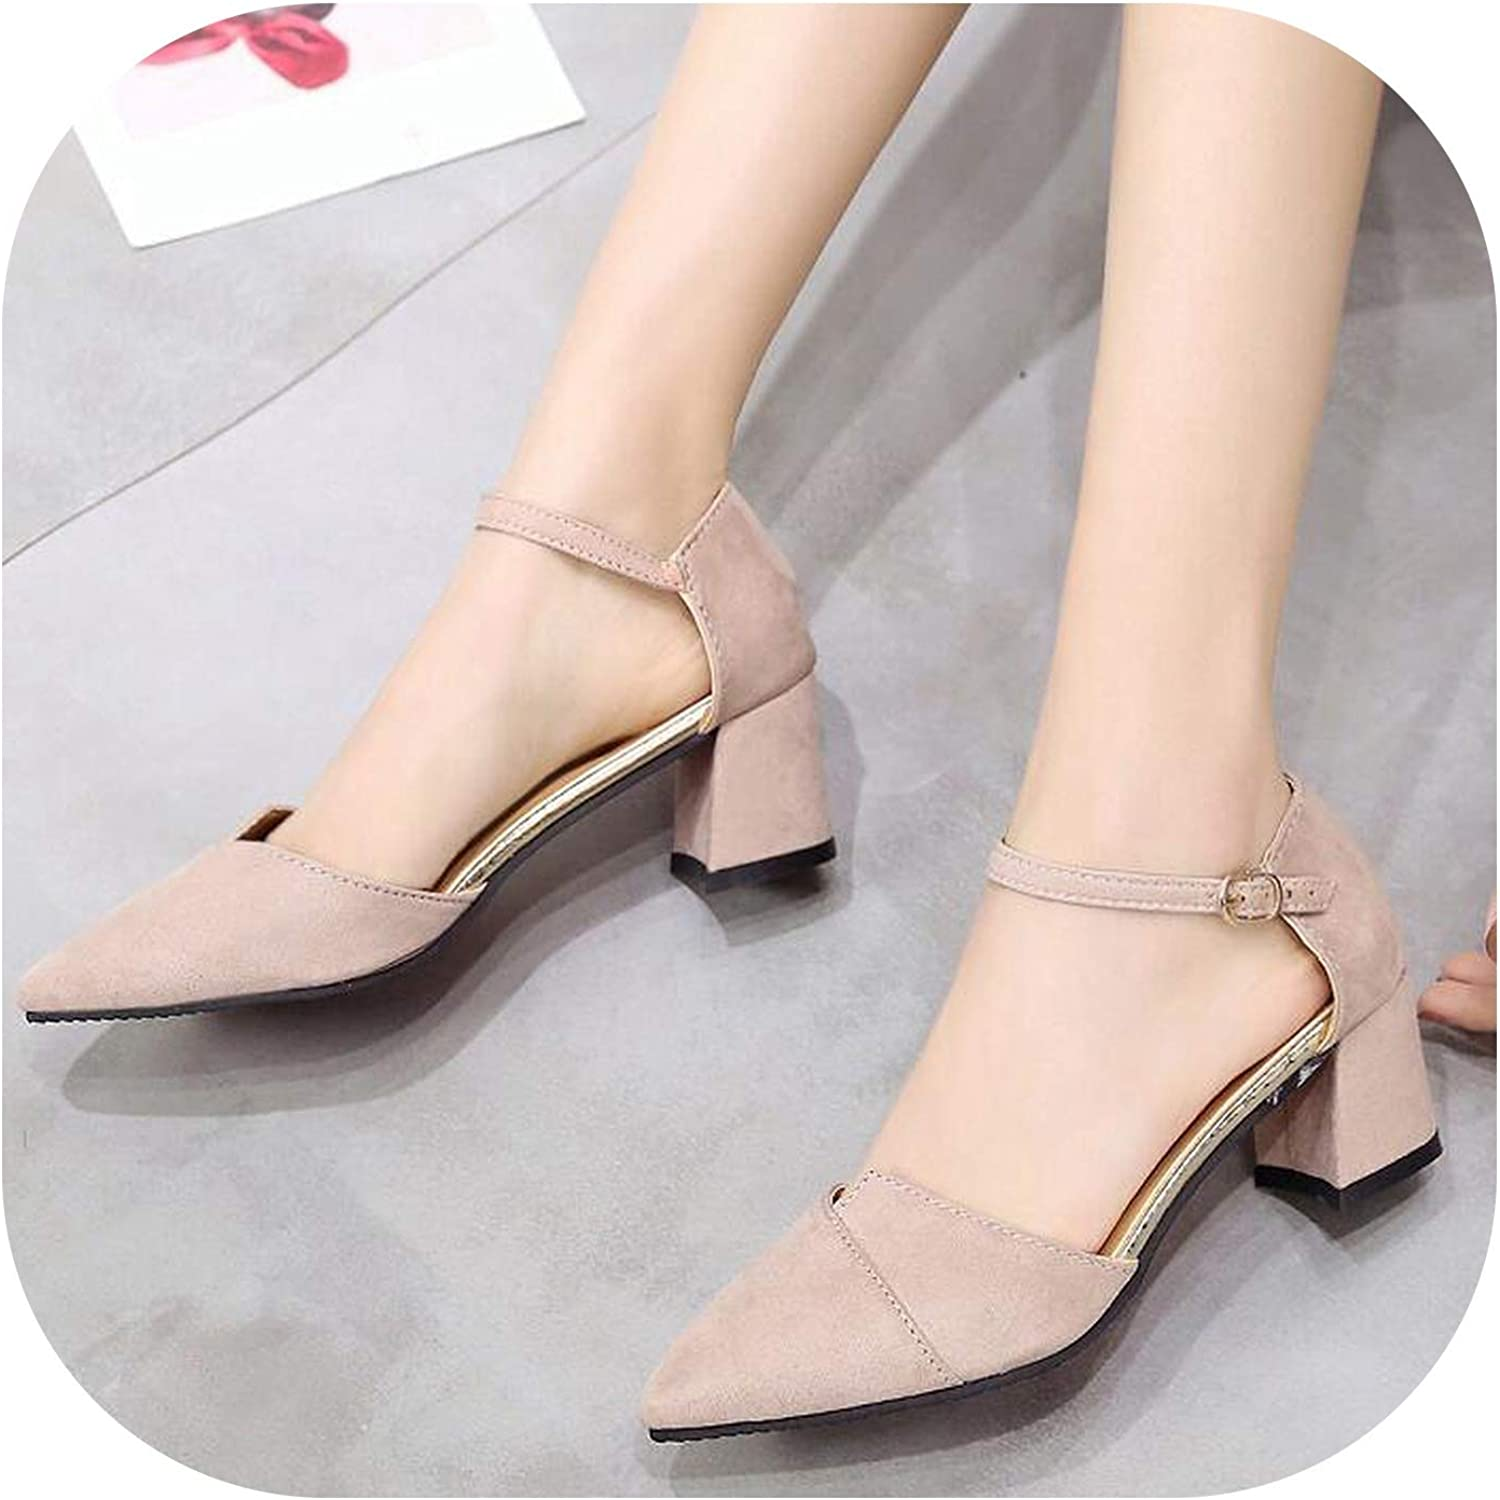 Gooding Day High Heels Women Ankle Thick Heels Ladies Party Black Beige Pink shoes Buckle Ankle Strap Footwear